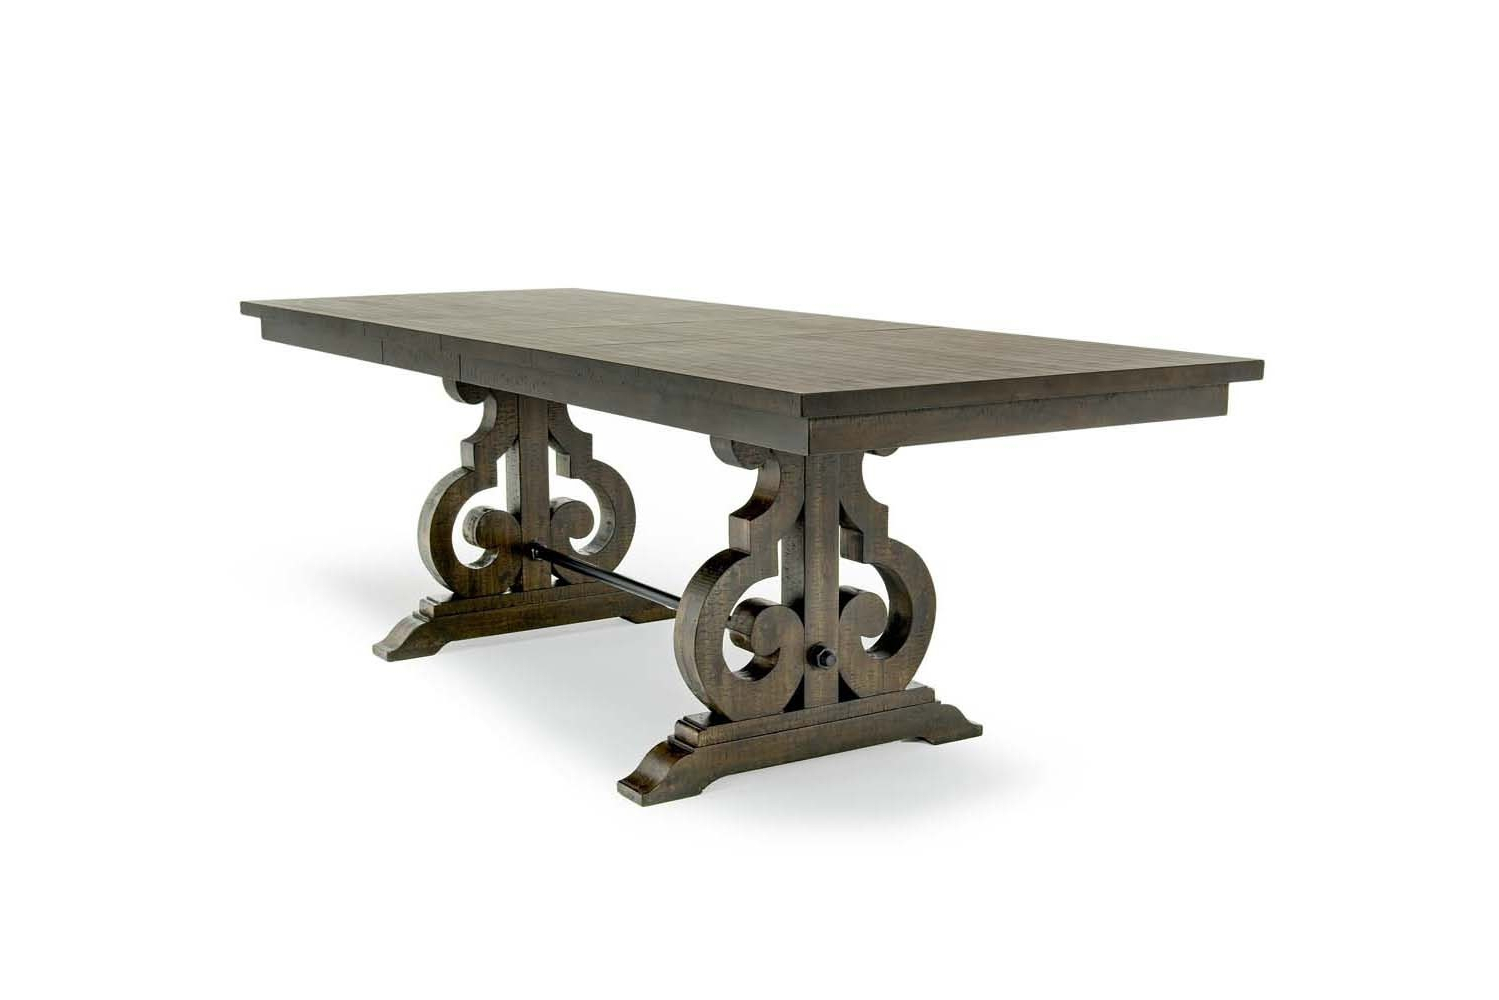 Mor Furniture Intended For Newest Charcoal Transitional 6 Seating Rectangular Dining Tables (View 15 of 30)